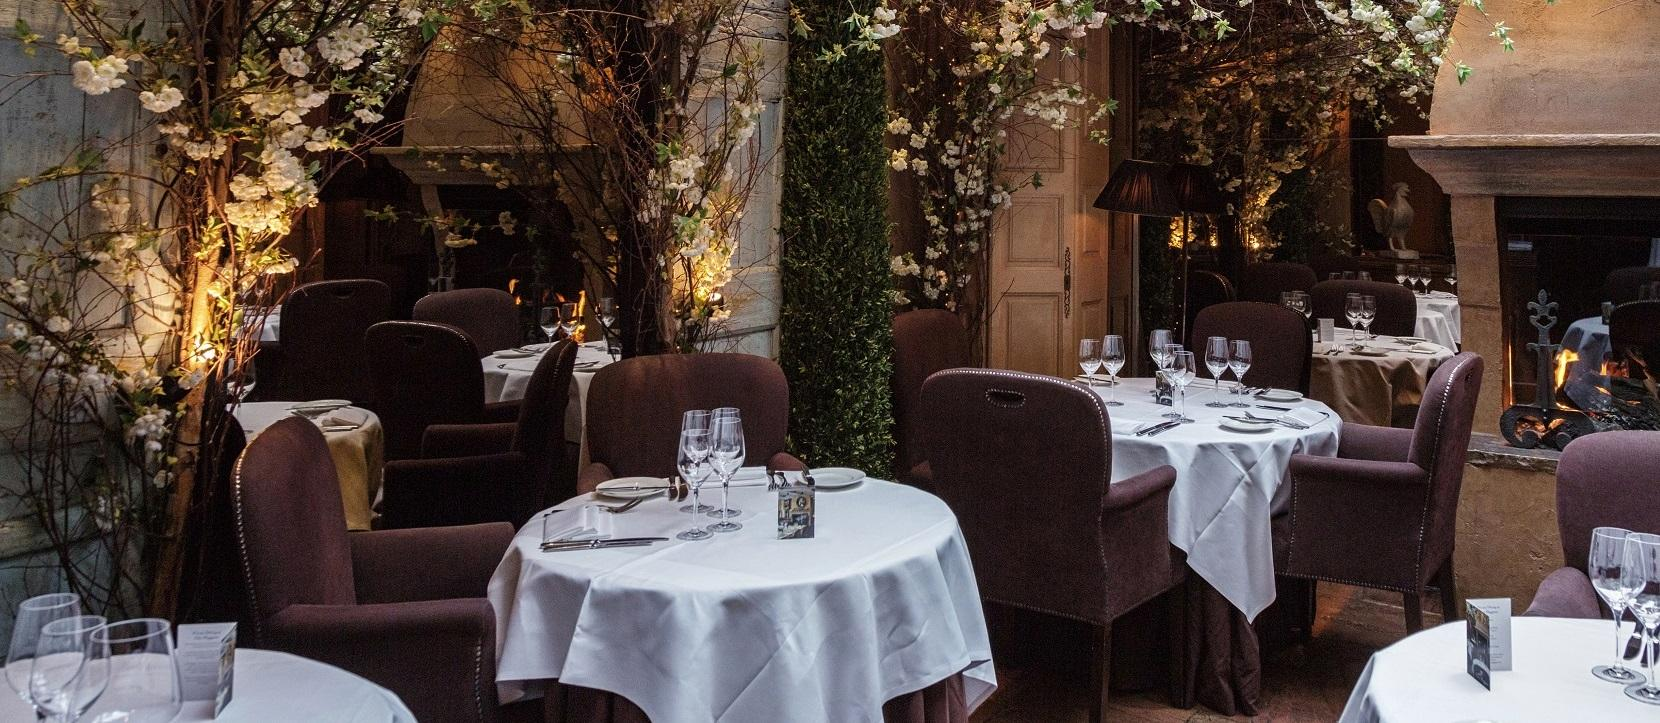 Clos Maggiore Upstairs Dining Room